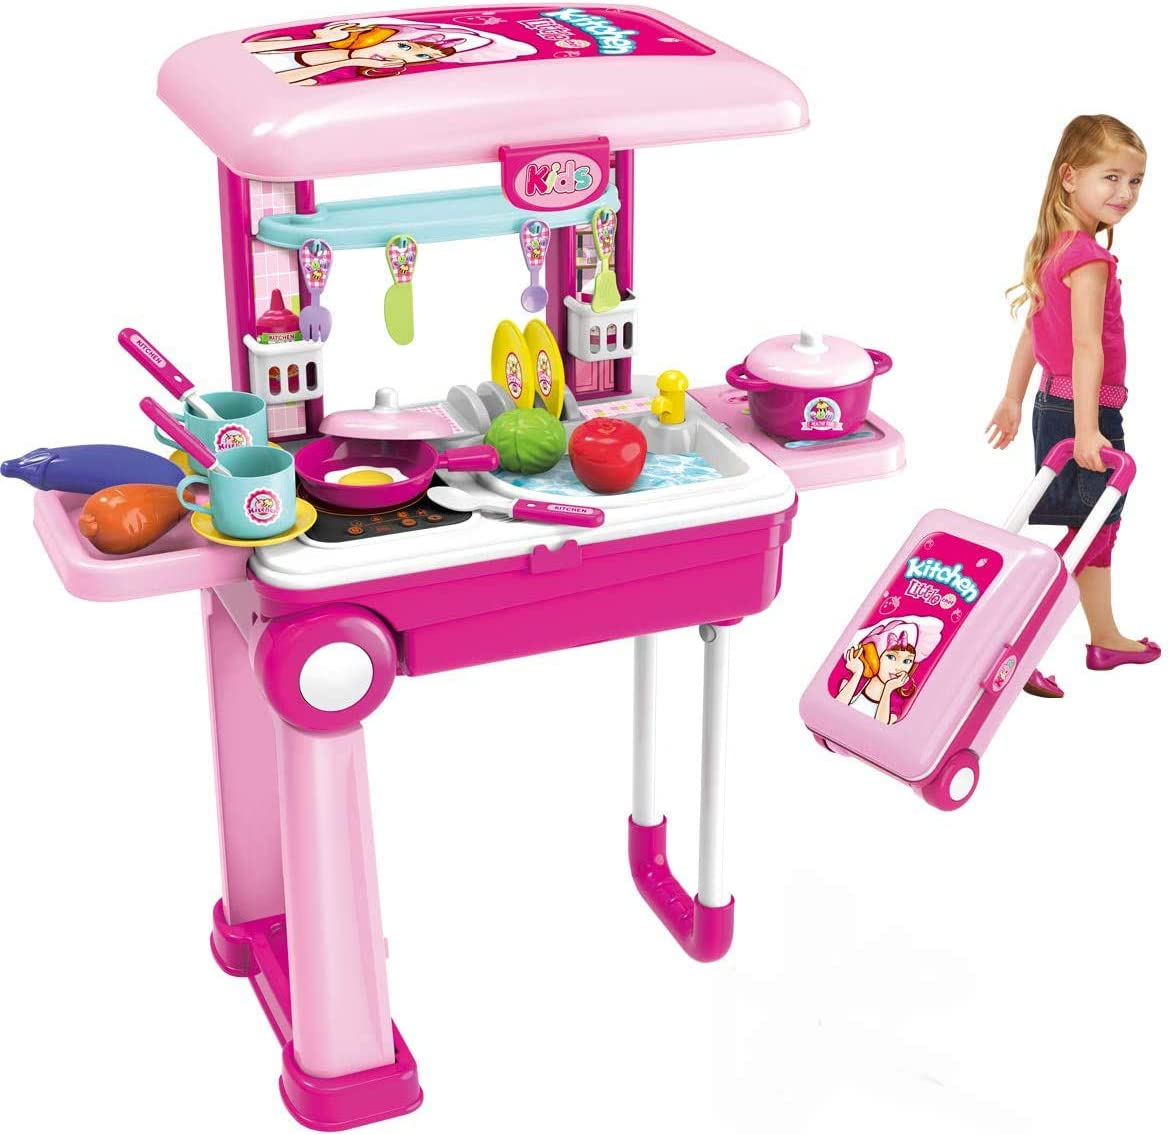 Amazon Com Roxie Pretend Play Kitchen Toy Set For Kids Girls Boys 2 In 1 Little Cooks Play Kitchen With Lights Sounds Deluxe Portable Kitchen Playset Toy Toys Games